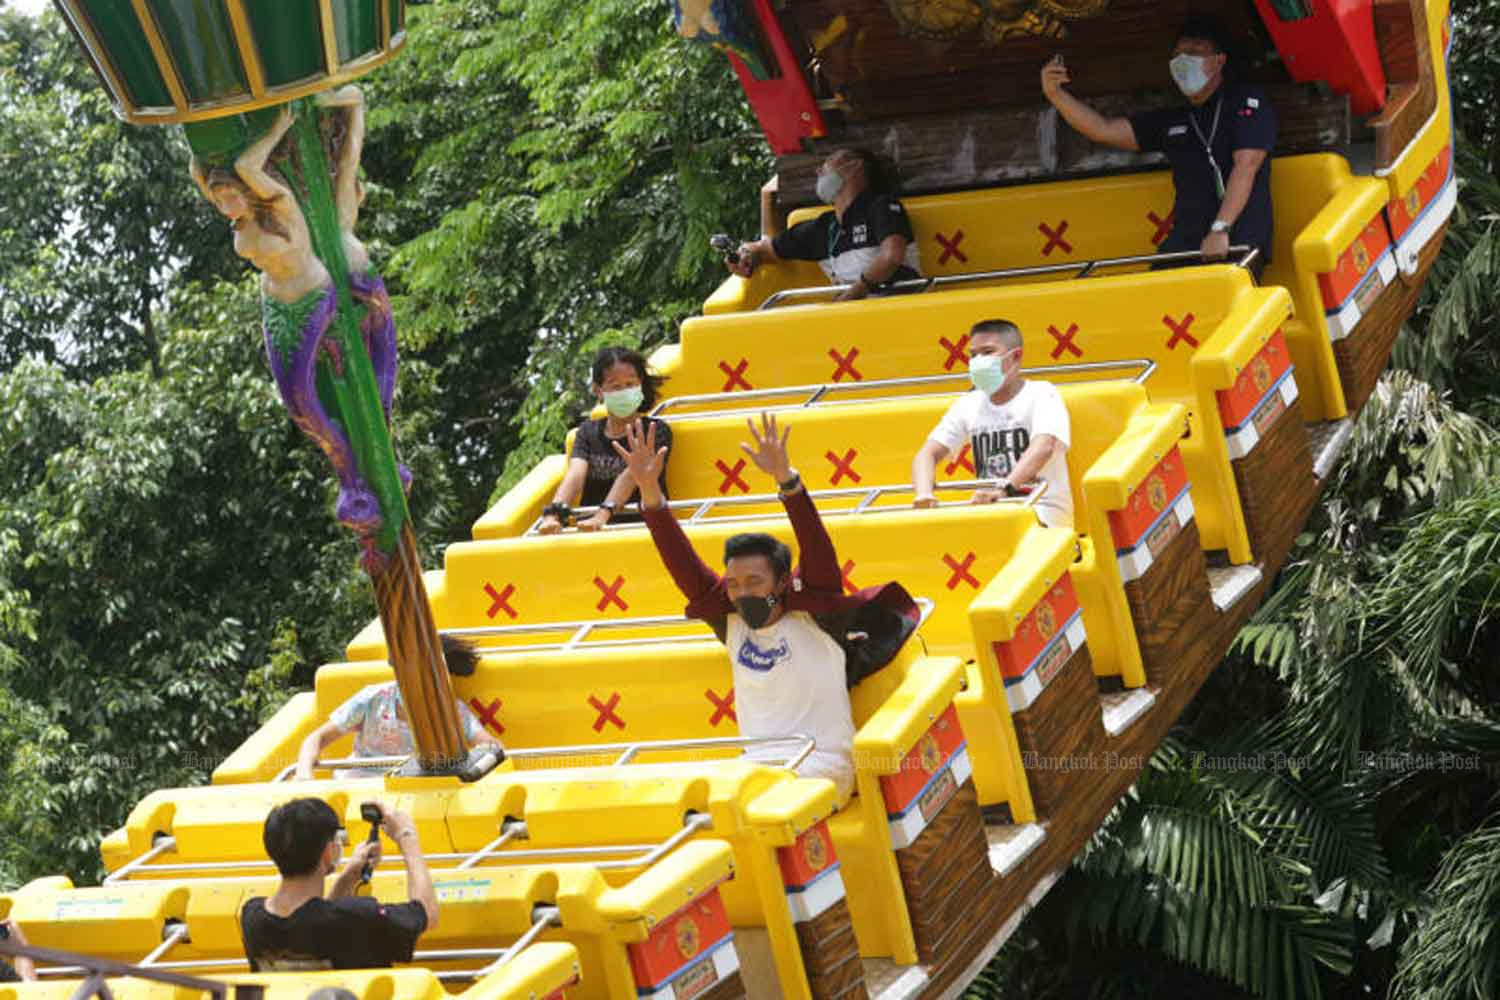 Tourists have their pleasant moment at the Dream World amusement park in Pathum Thani province. (Photo: Apichit Jinakul)